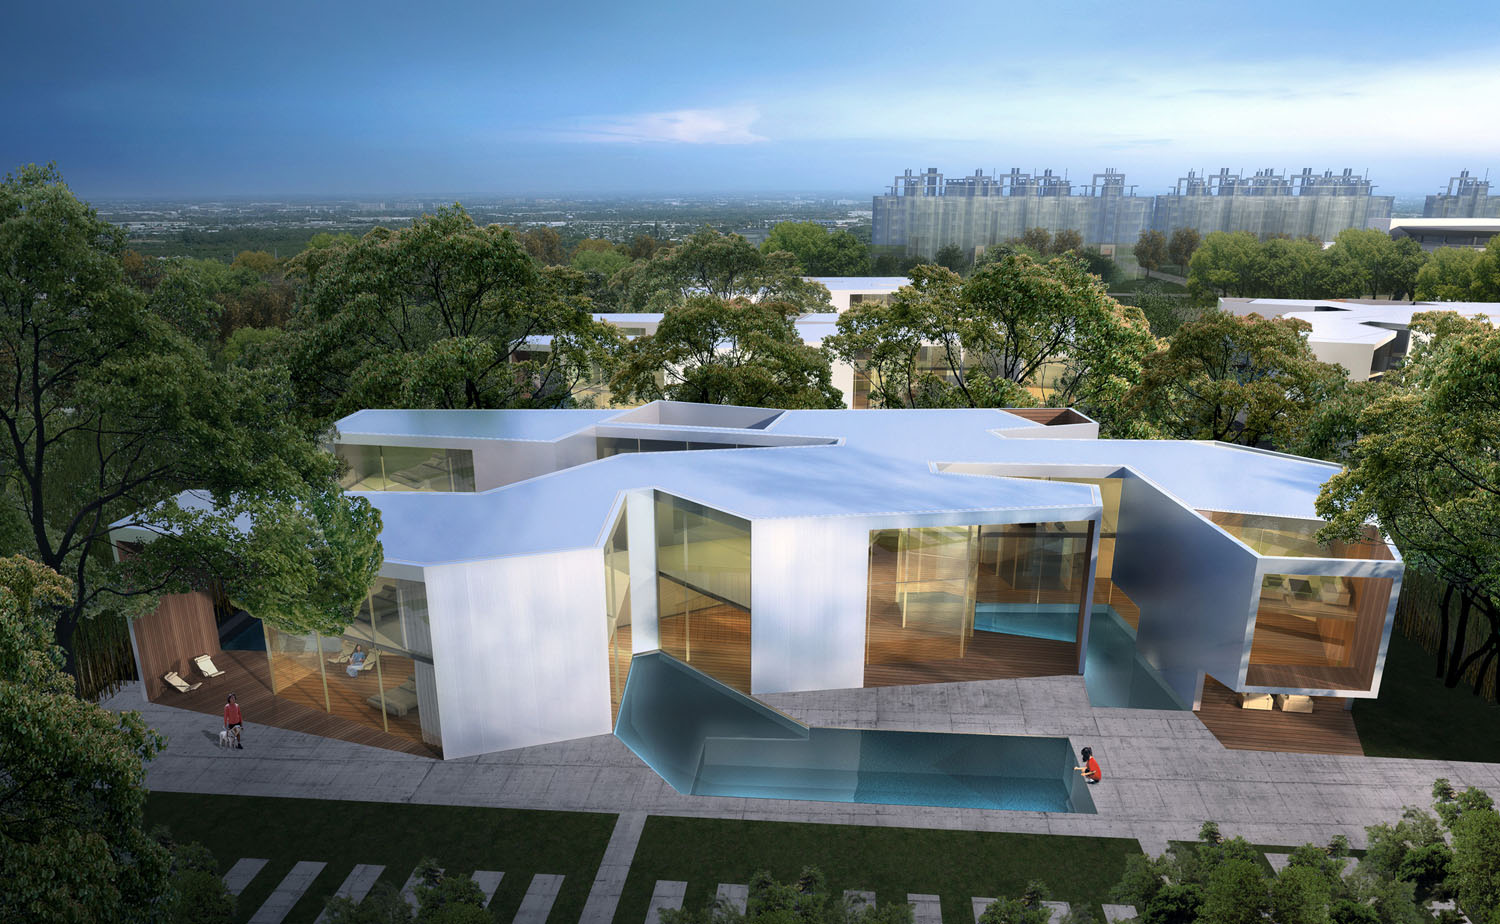 Shanghai Flower Garden Square design by Real Time Architecture (RTA-Office)